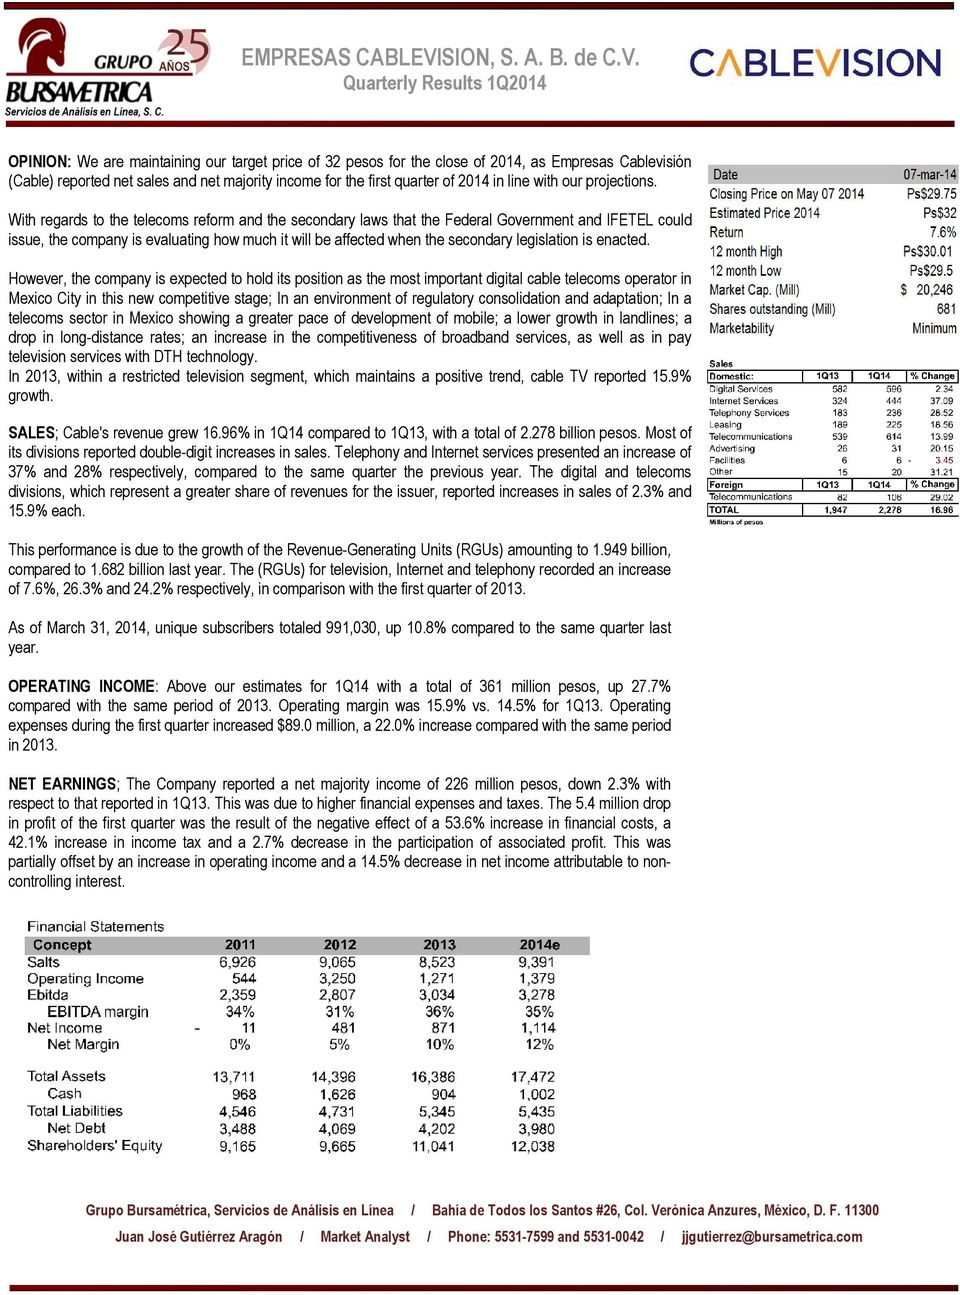 Quarterly Results 1T141Q2014 OPINION: We are maintaining our target price of 32 pesos for the close of 2014, as Empresas Cablevisión (Cable) reported net sales and net majority income for the first